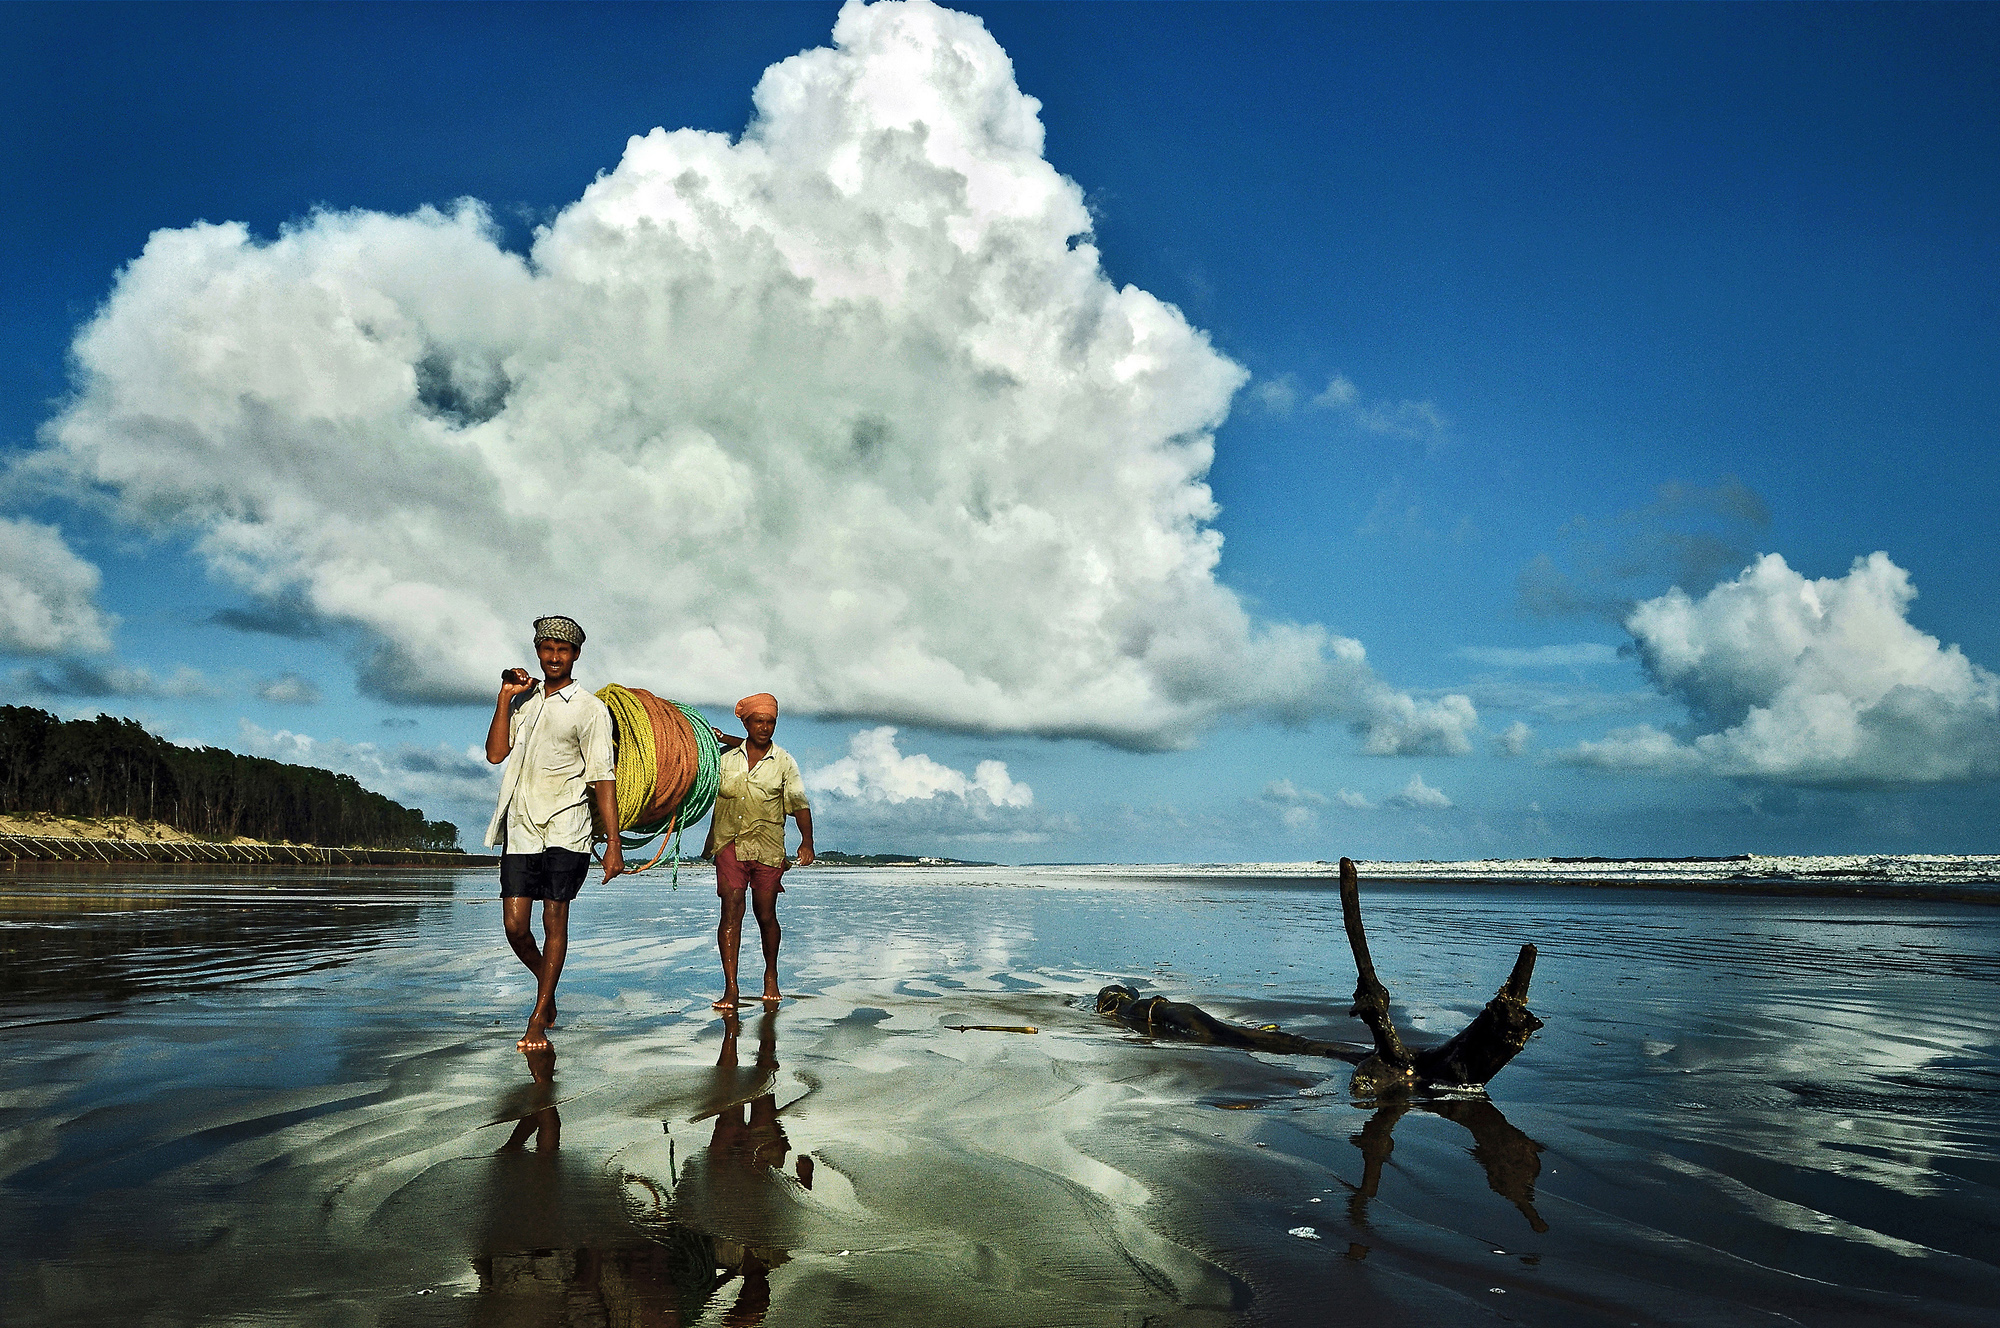 From Sea to Land, India